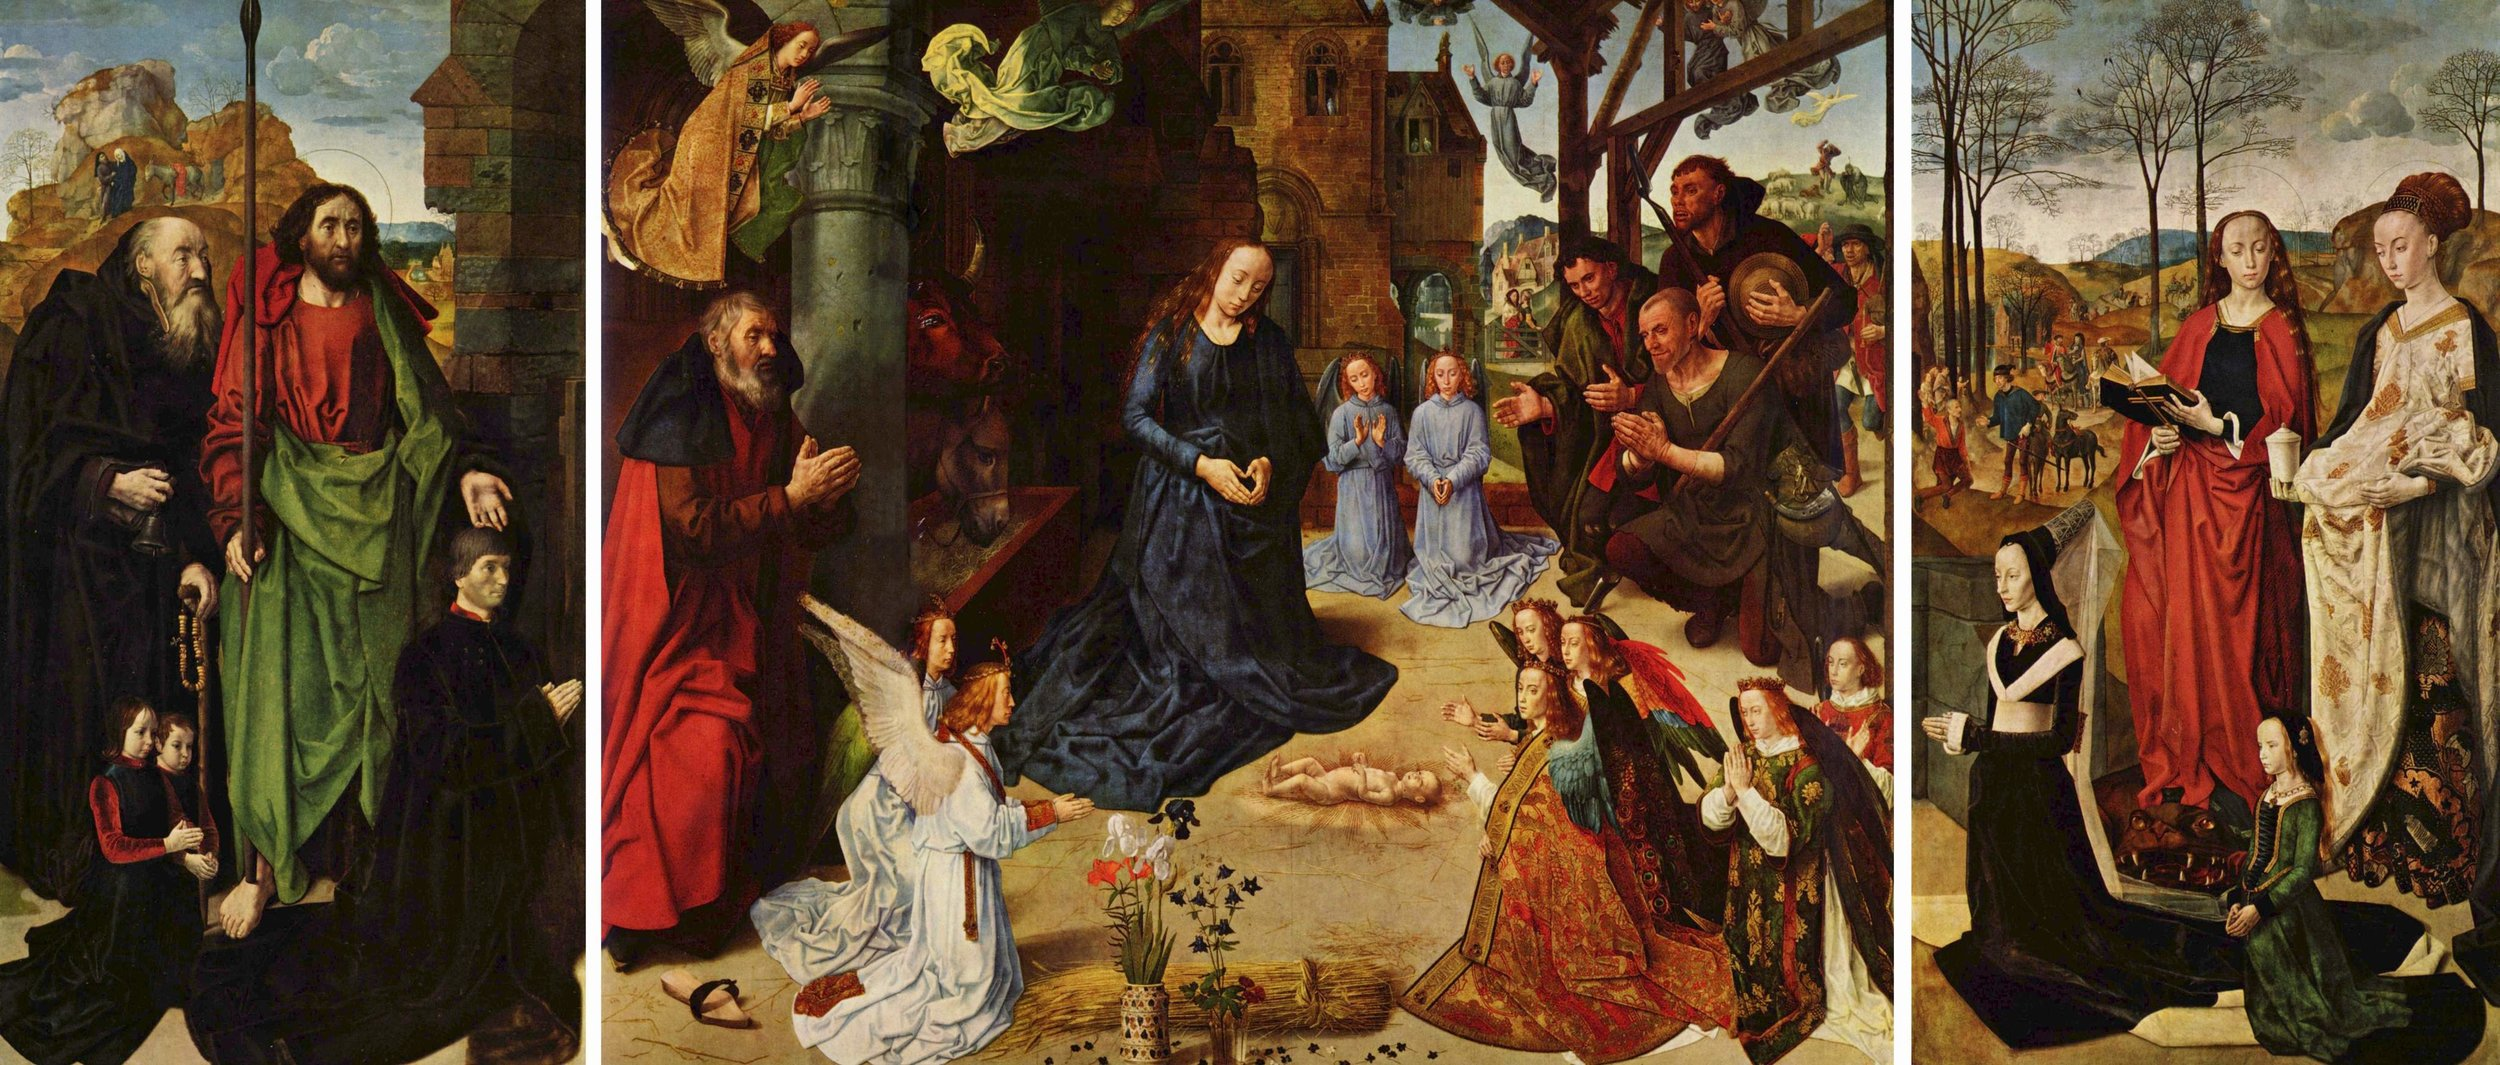 "Hugo van der Goes- The Portinari Altarpiece, c. 1475, oil on panel, approx 107x256"", Uffizi, Florence, Italy"